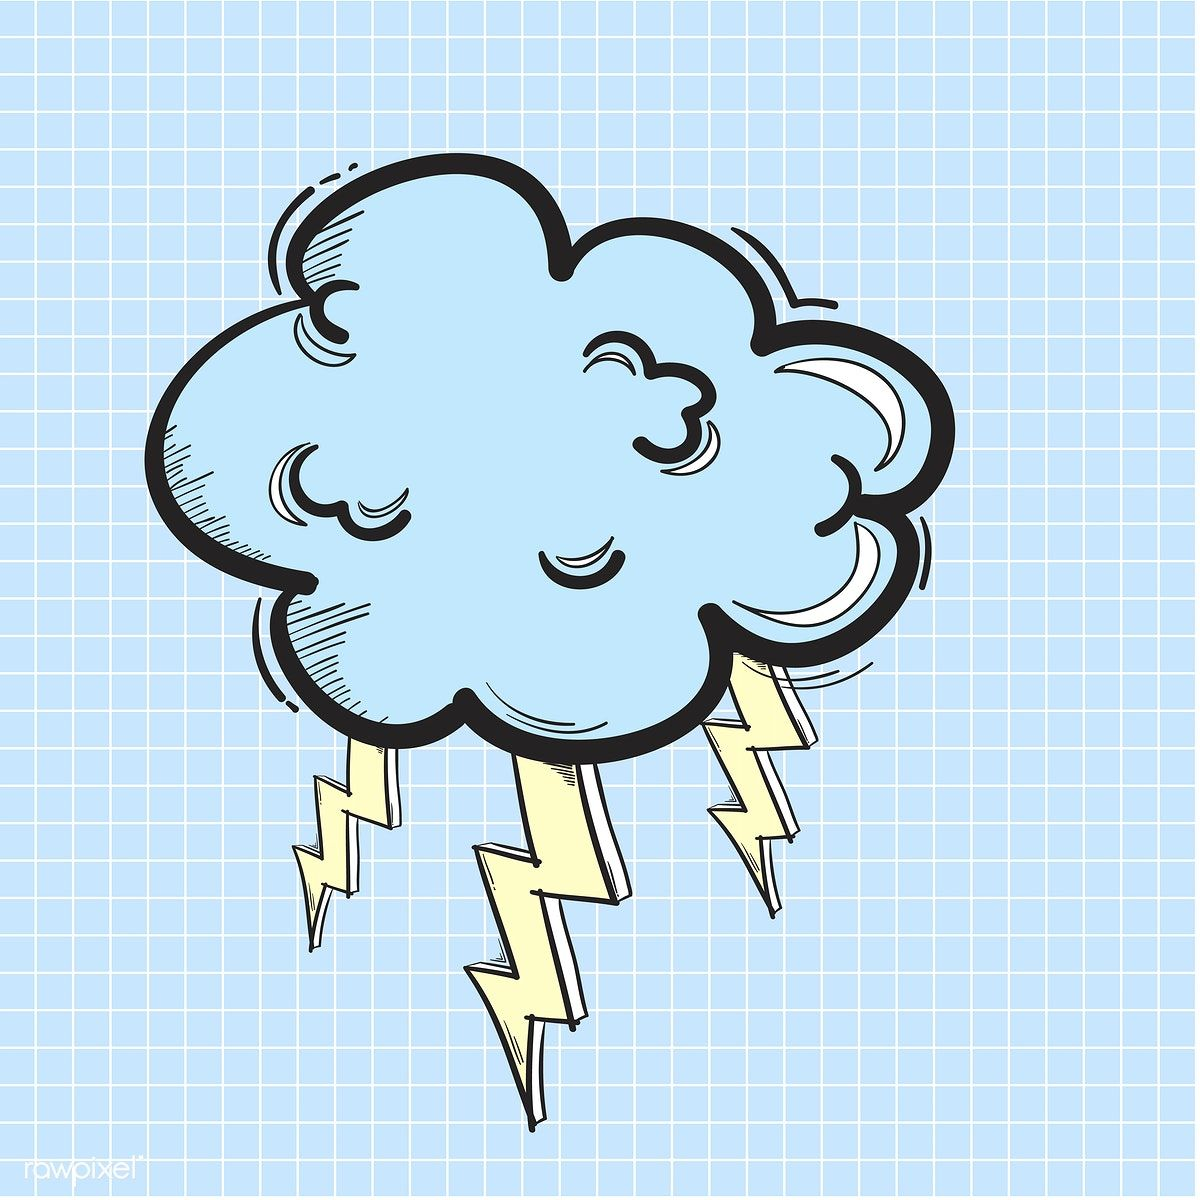 Vector Of Thunder Cloud Icon Free Image By Rawpixel Com Cloud Icon Thundercloud Hipster Doodles